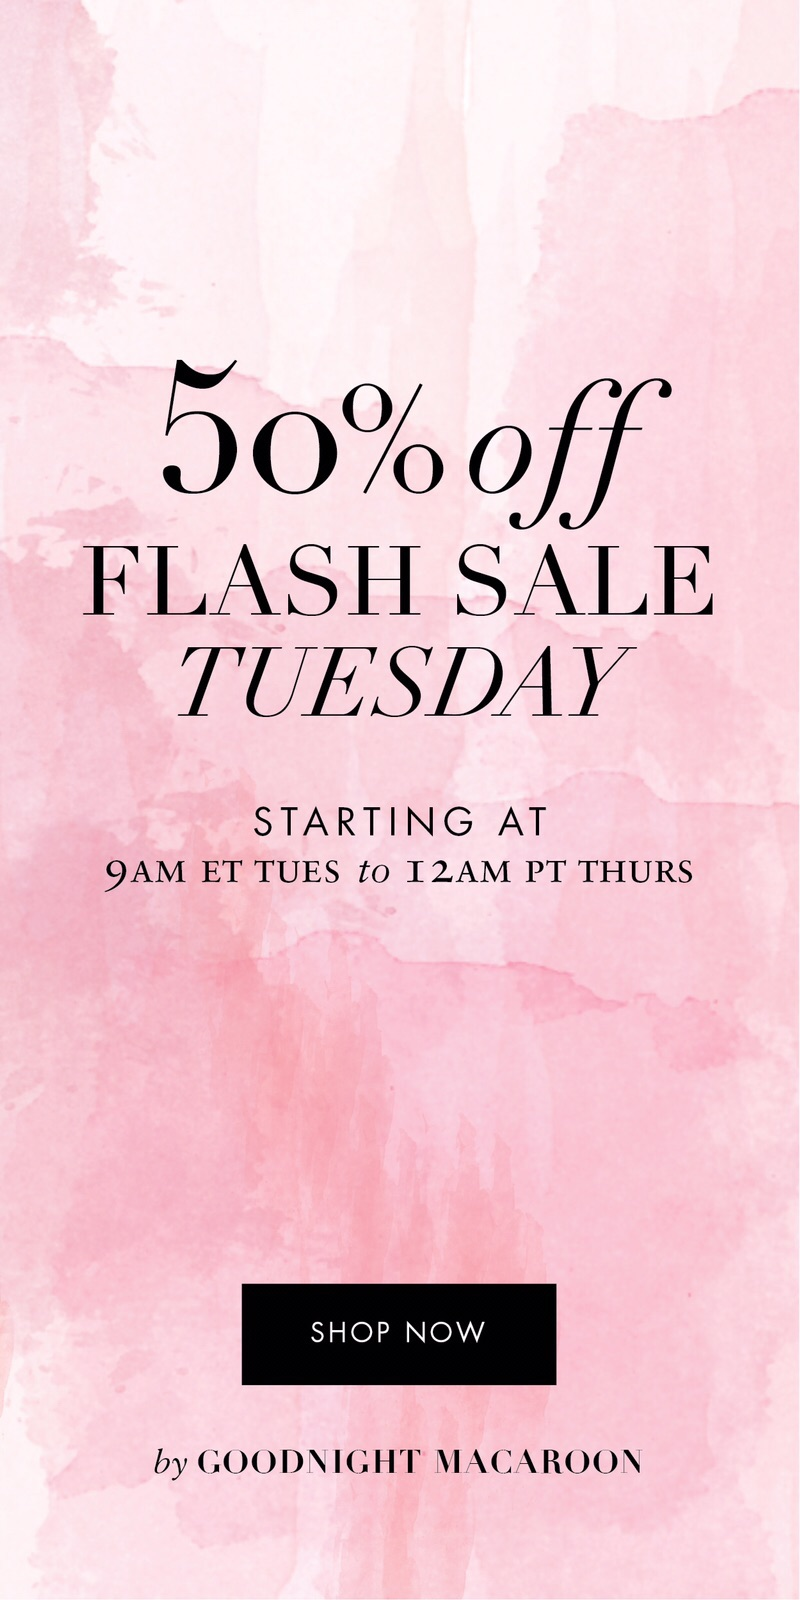 50% Flash Sale Tuesday by Goodnight Macaroon